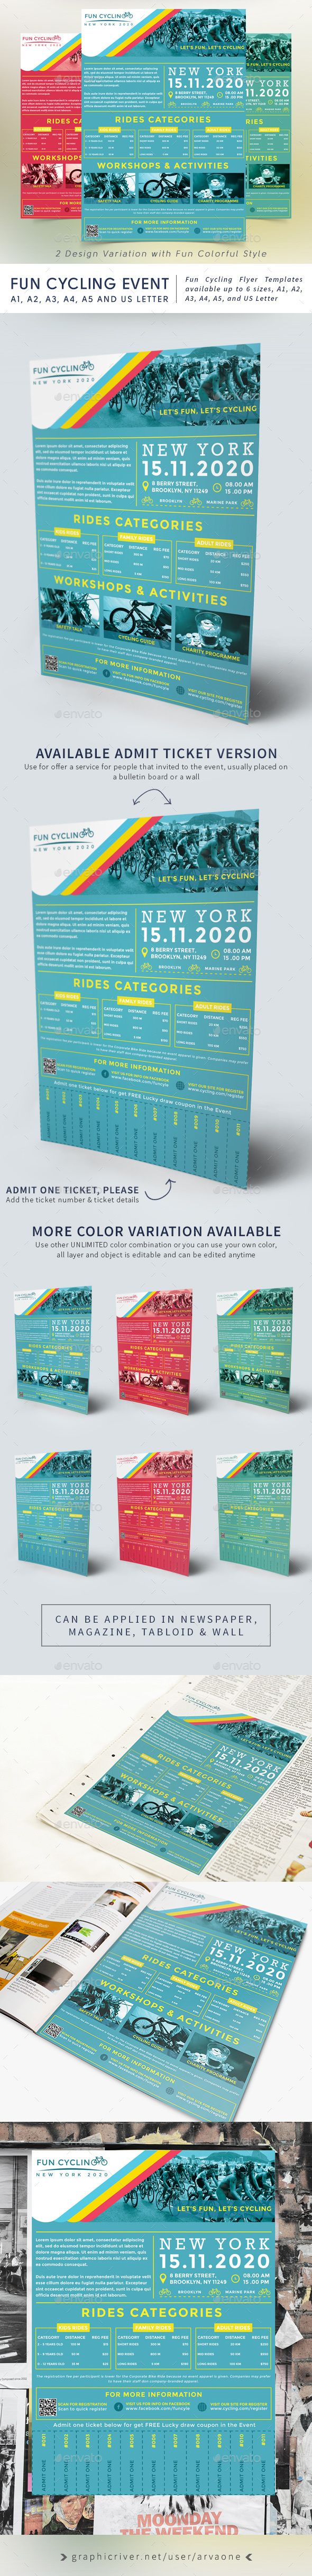 Fun Cycling Event Flyer Templates